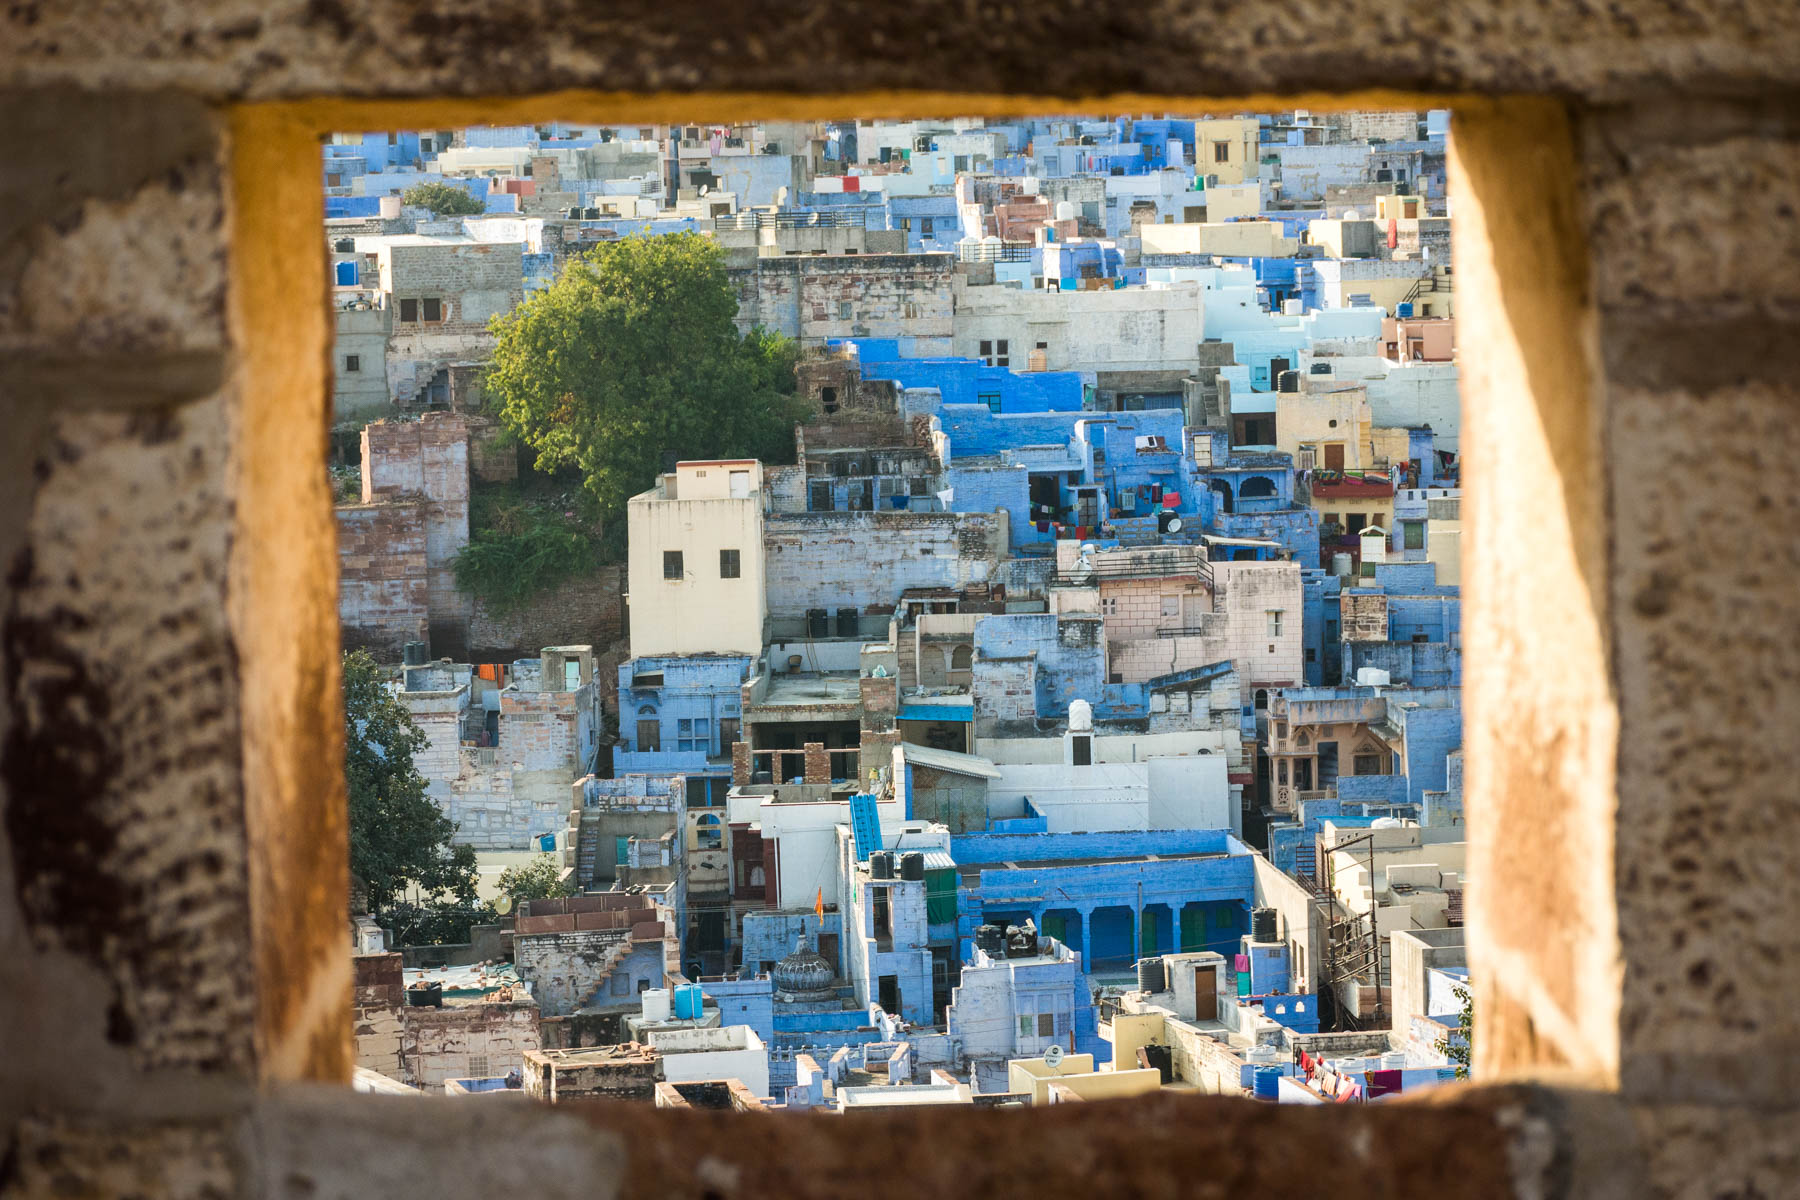 Photo essay about the streets and people of the Blue City of Jodhpur, Rajasthan, India - A look through a window of Jodhpur, India - Lost With Purpose